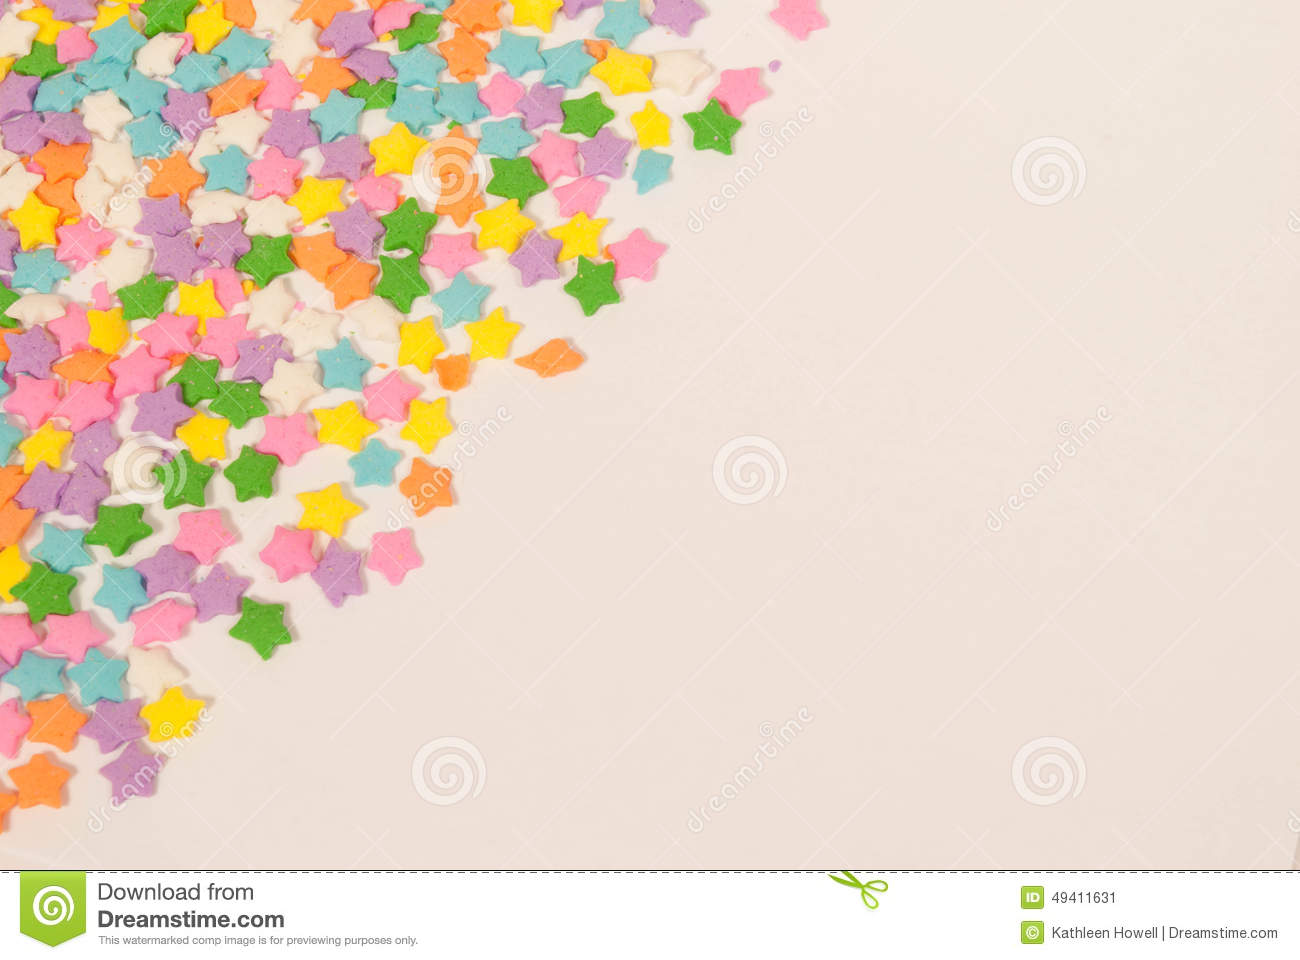 Pastel star clipart image royalty free Pastel Stars Stock Image - Image: 14671031 image royalty free